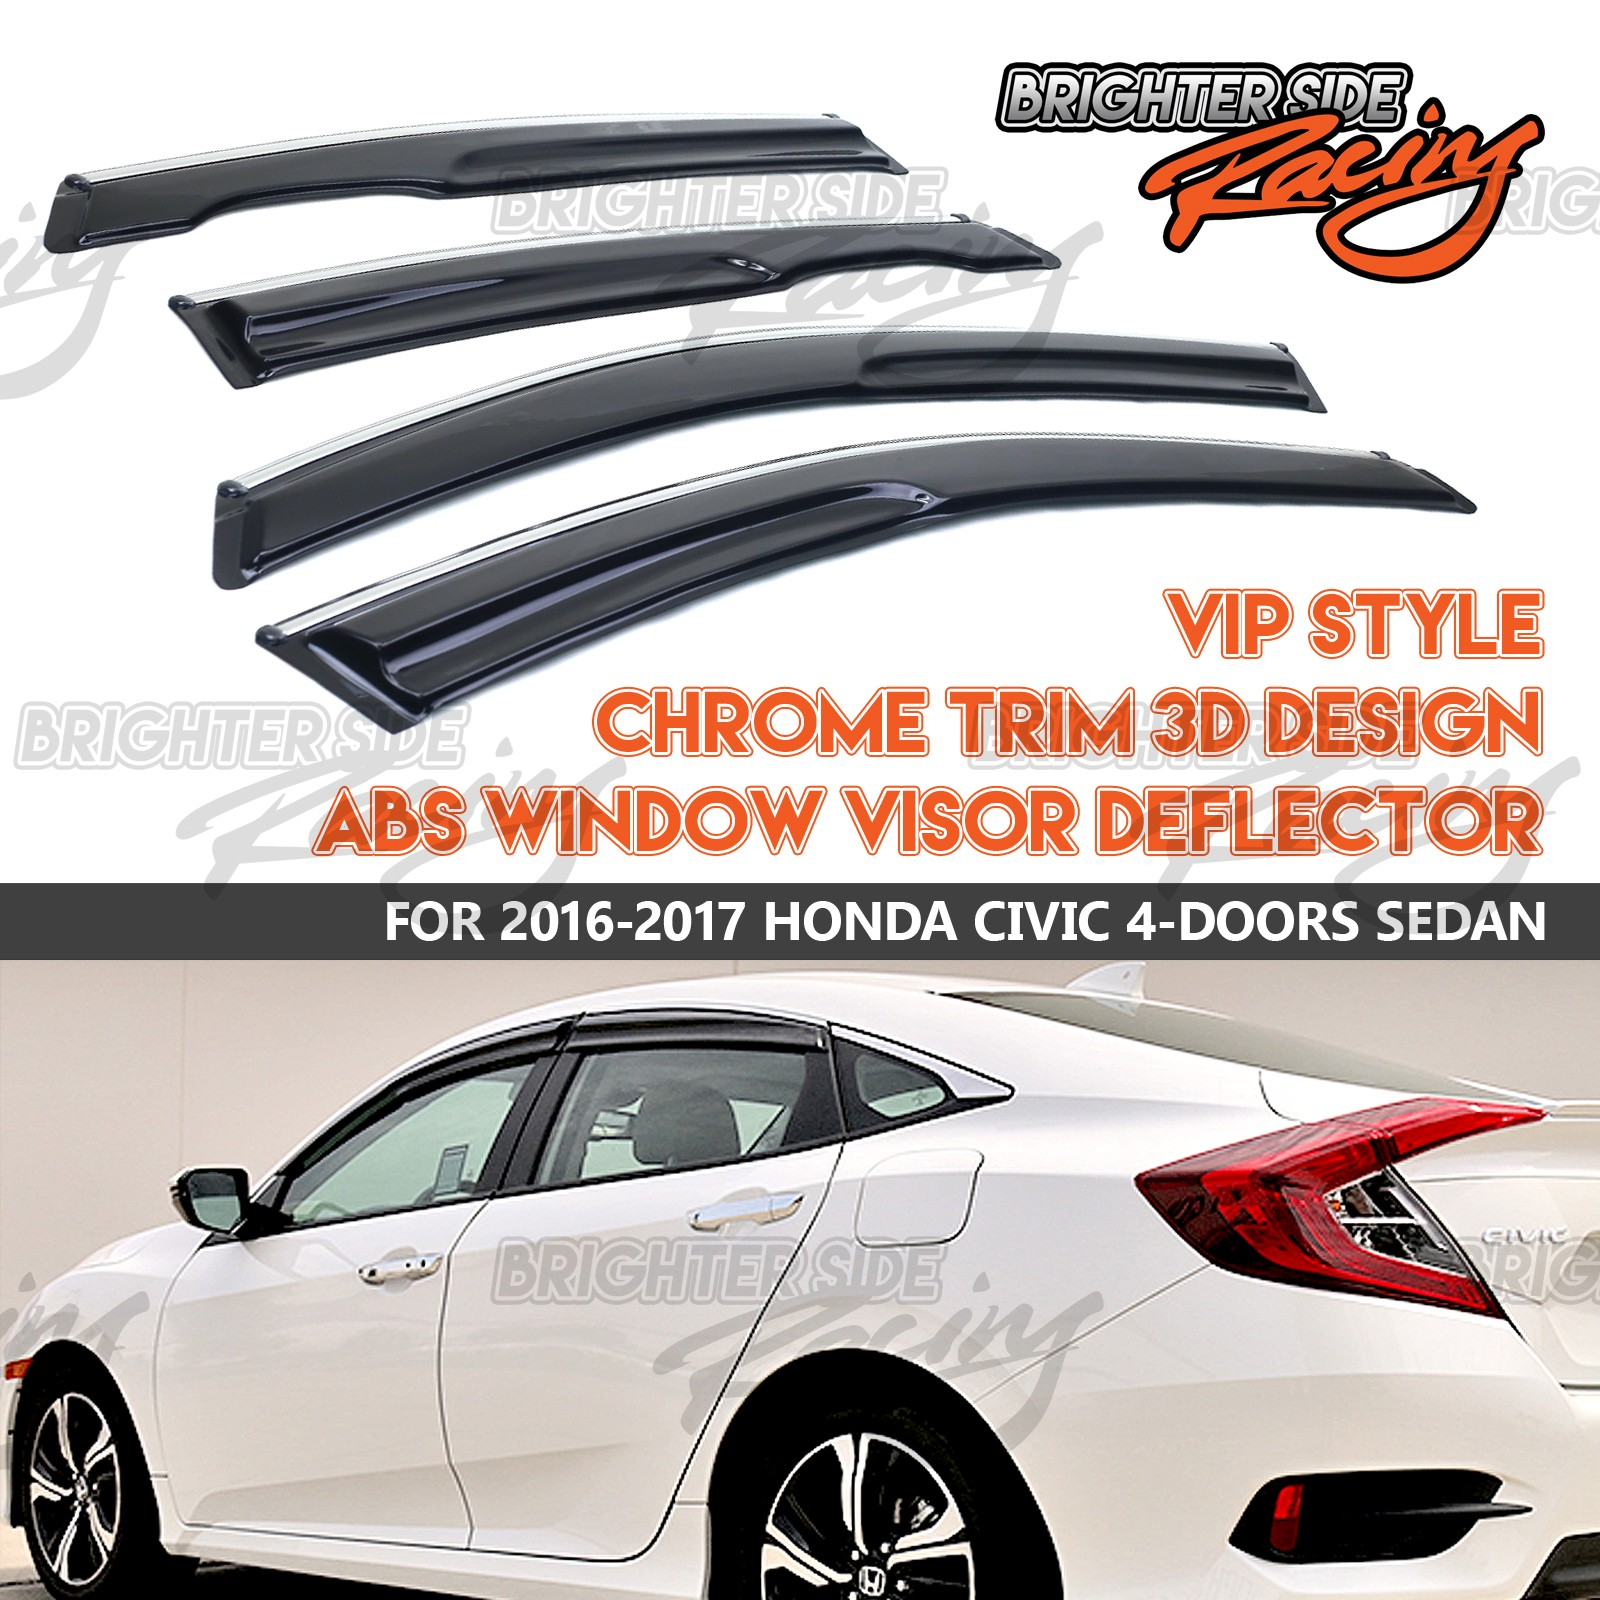 MADE FOR 16-17 HONDA CIVIC SEDAN WINDOW VISOR DEFLECTOR